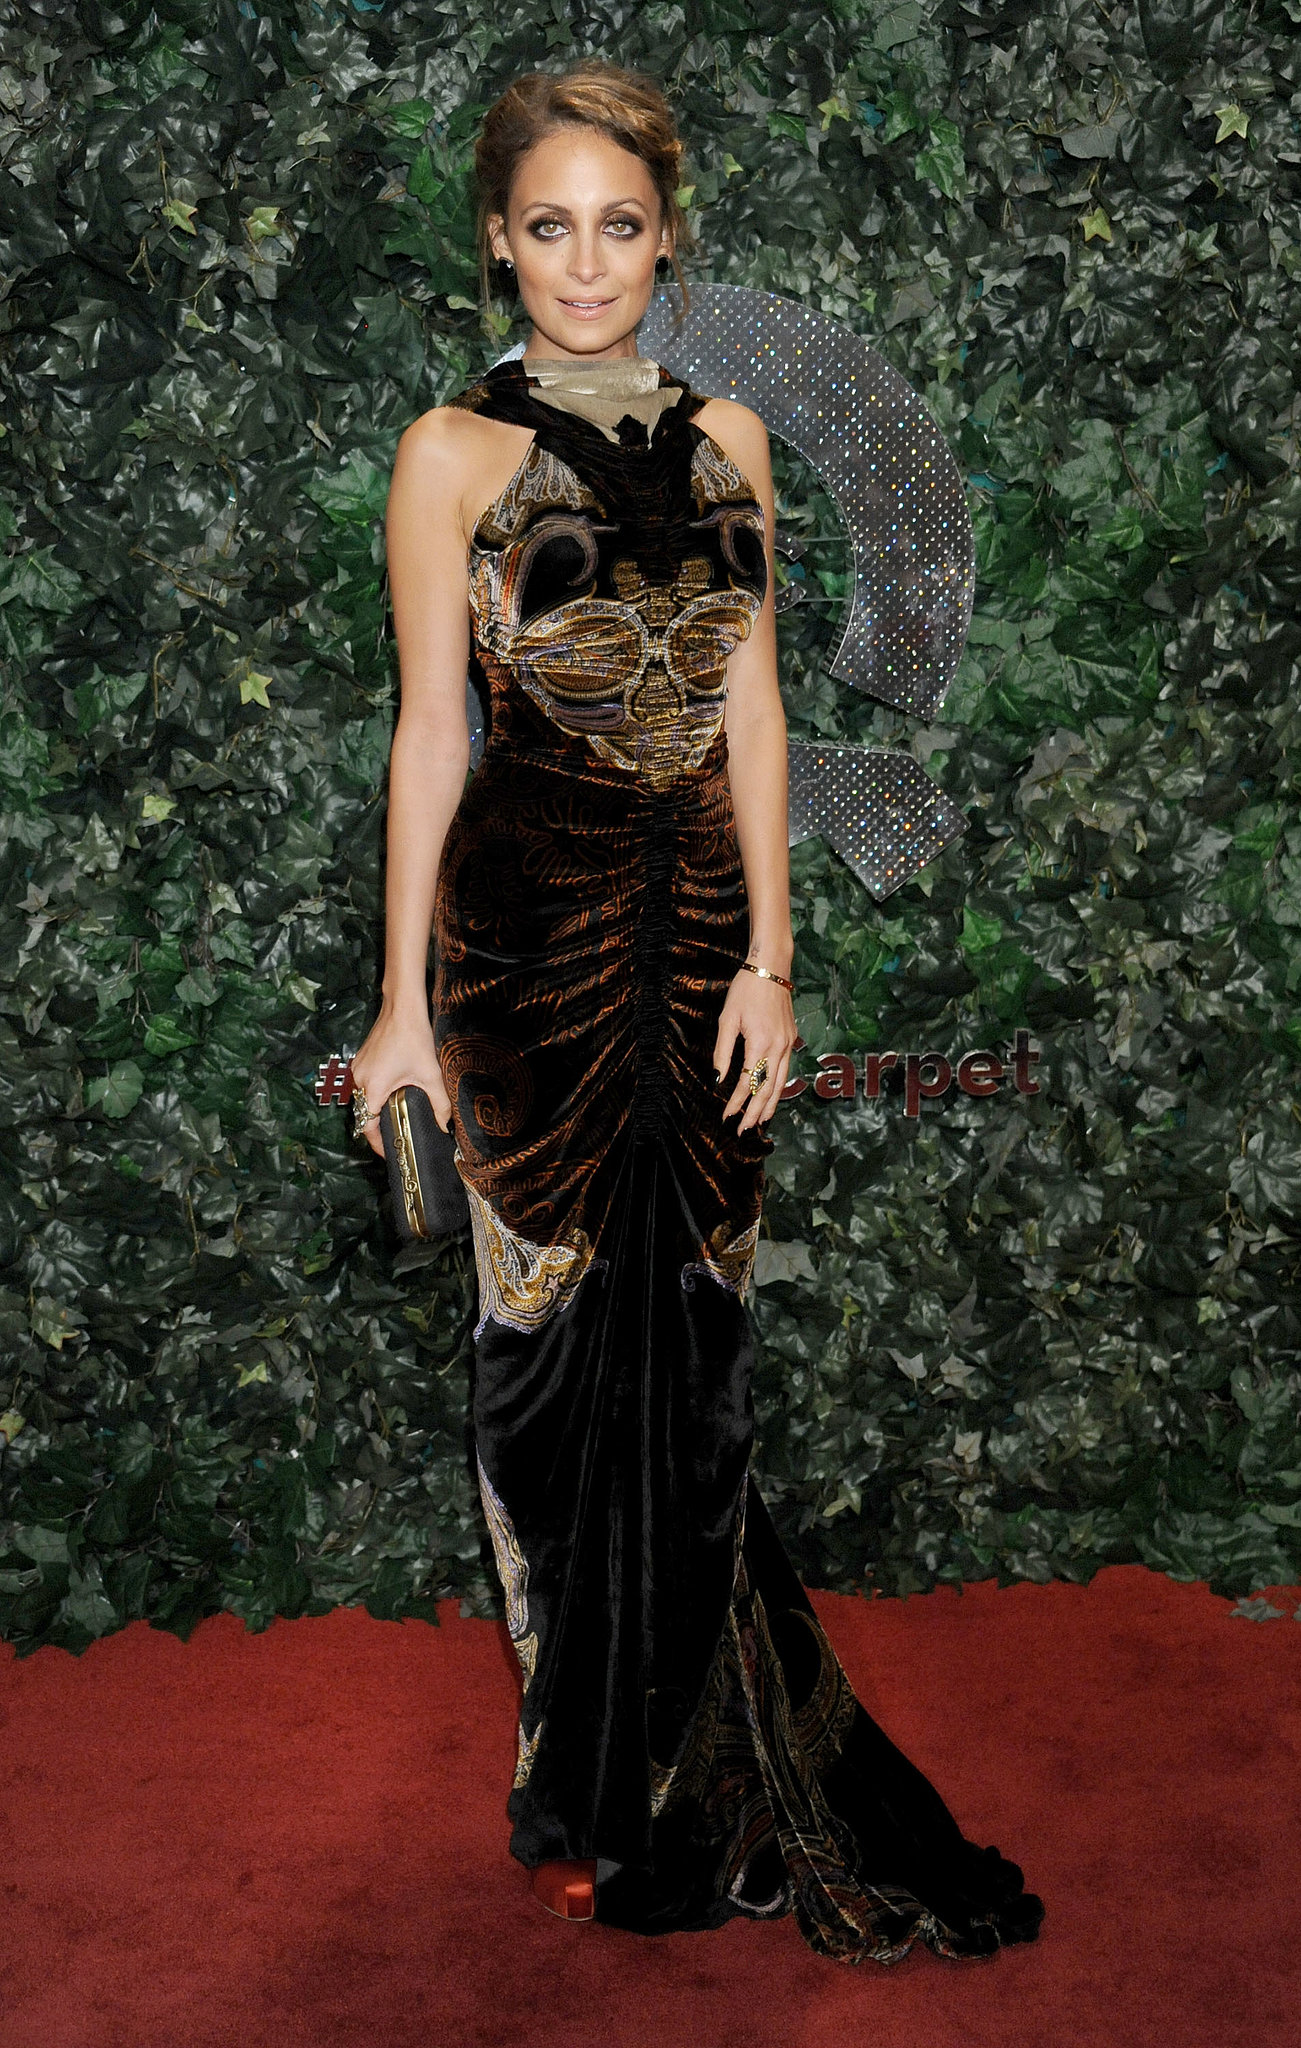 After launching a clothing line for QVC, Nicole Richie hit the red carpet for the company's big LA bash in February 2013.